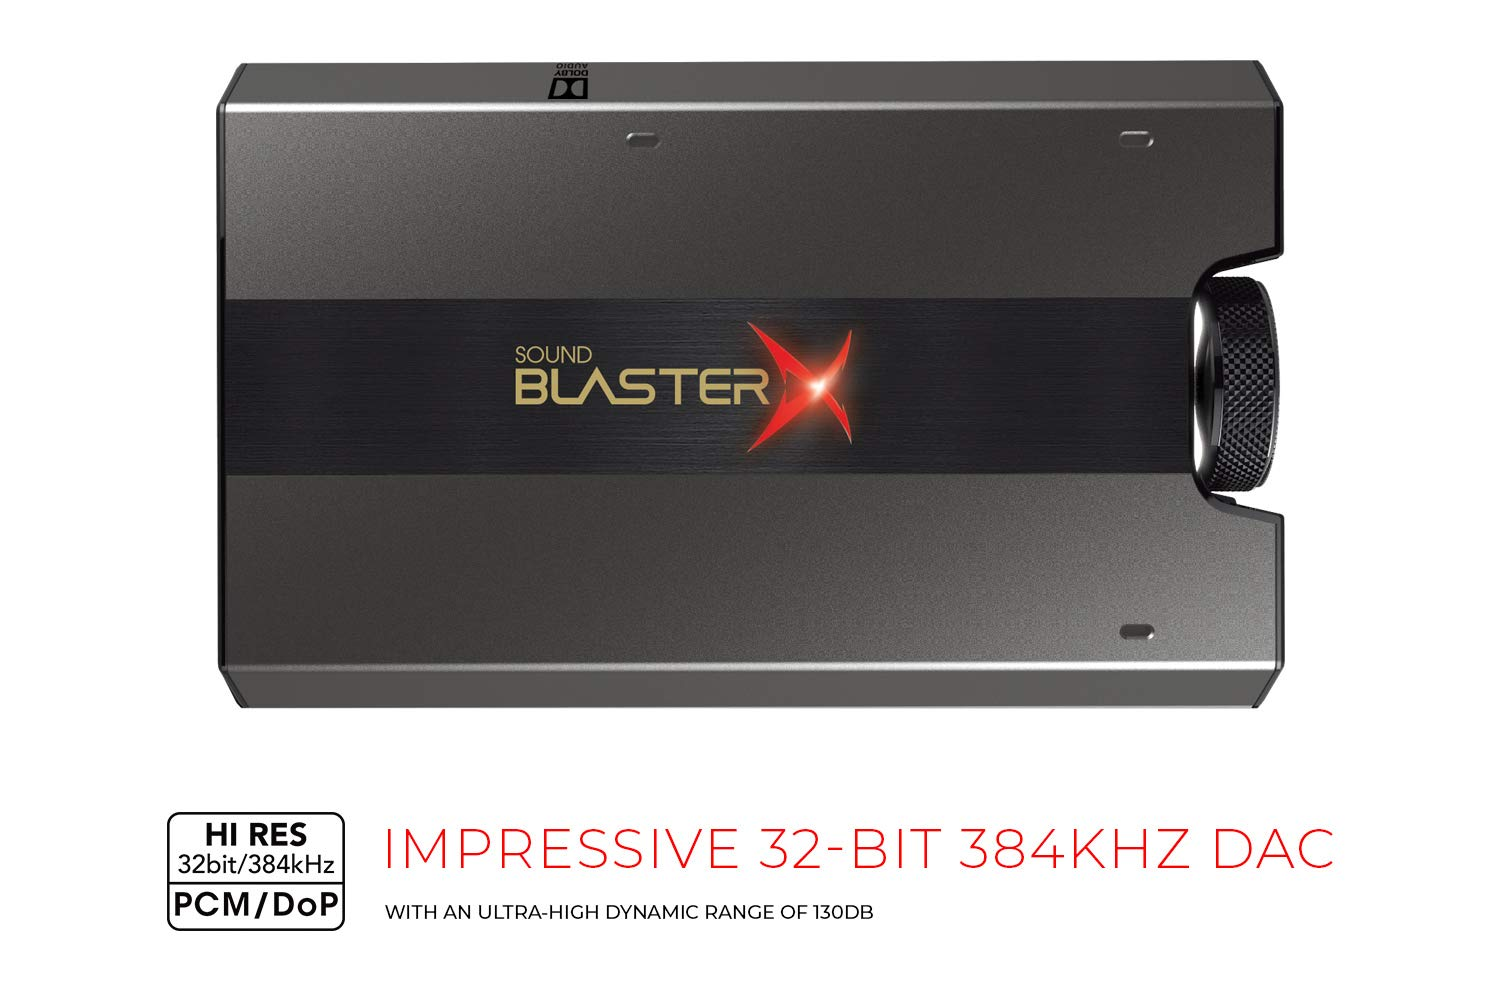 Sound BlasterX G6 Hi-Res 130dB 32bit/384kHz Gaming DAC, External USB Sound  Card with Xamp Headphone Amp, Dolby Digital, 7 1 Virtual Surround Sound,